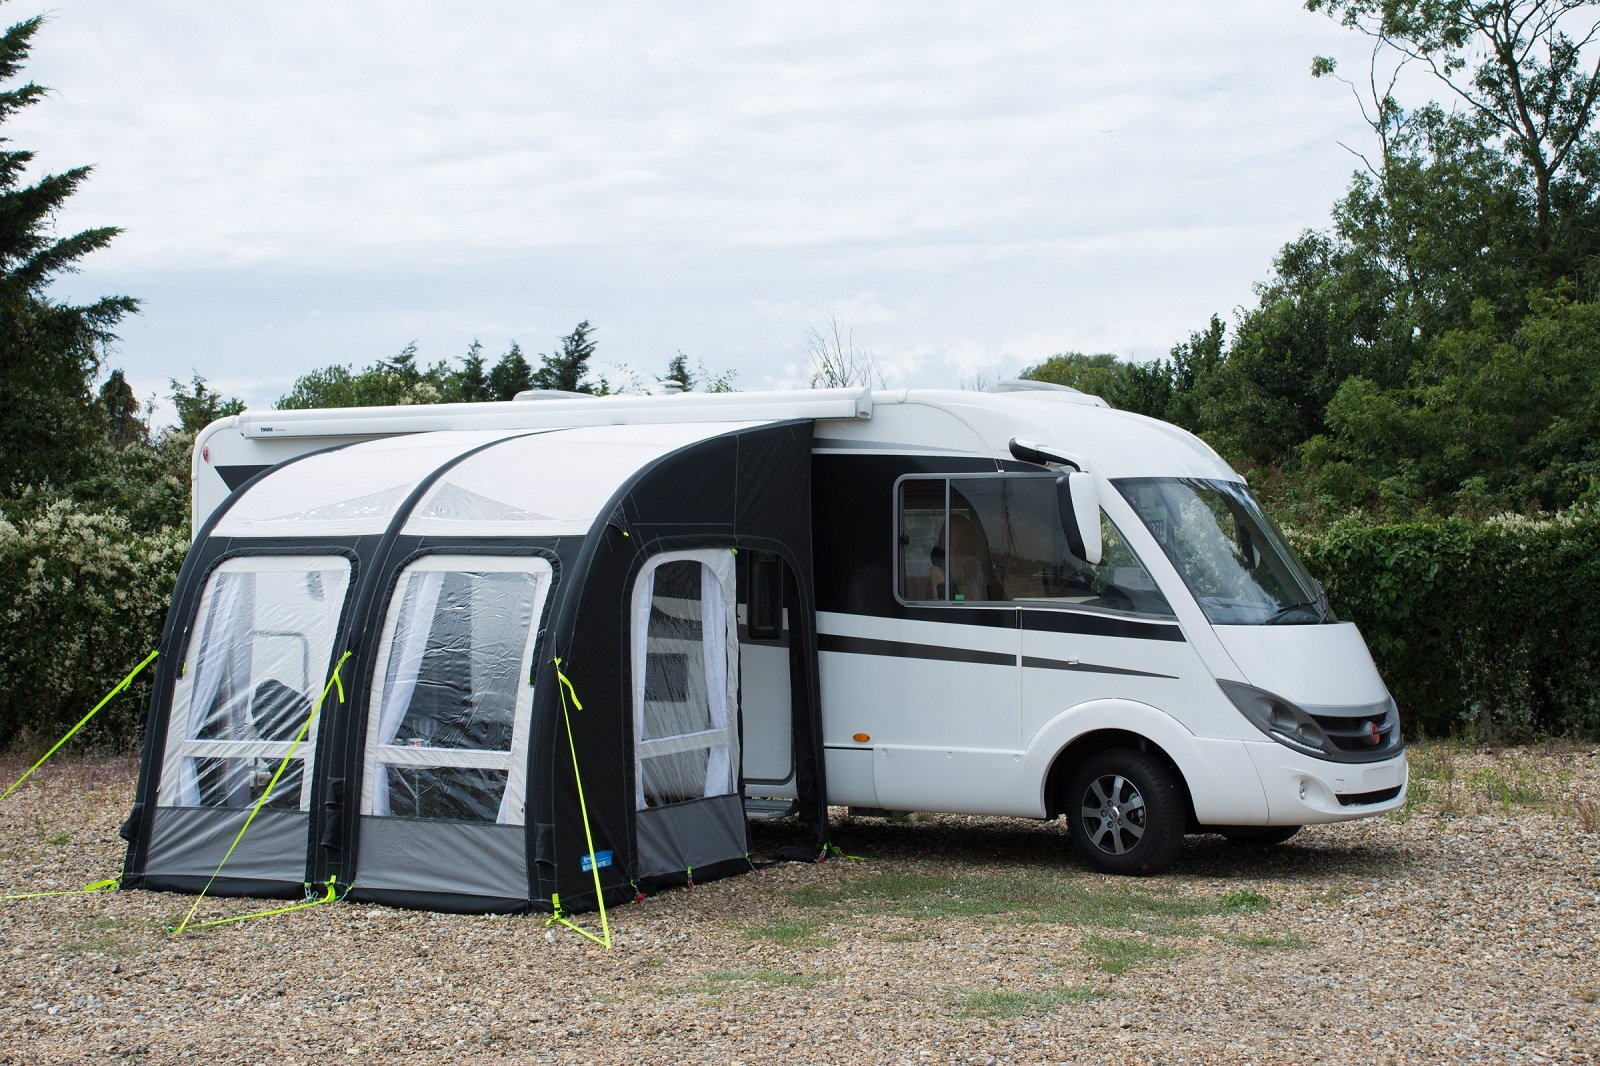 Kampa motor rally air pro t ltv rlden for Auvent gonflable kampa pour camping car